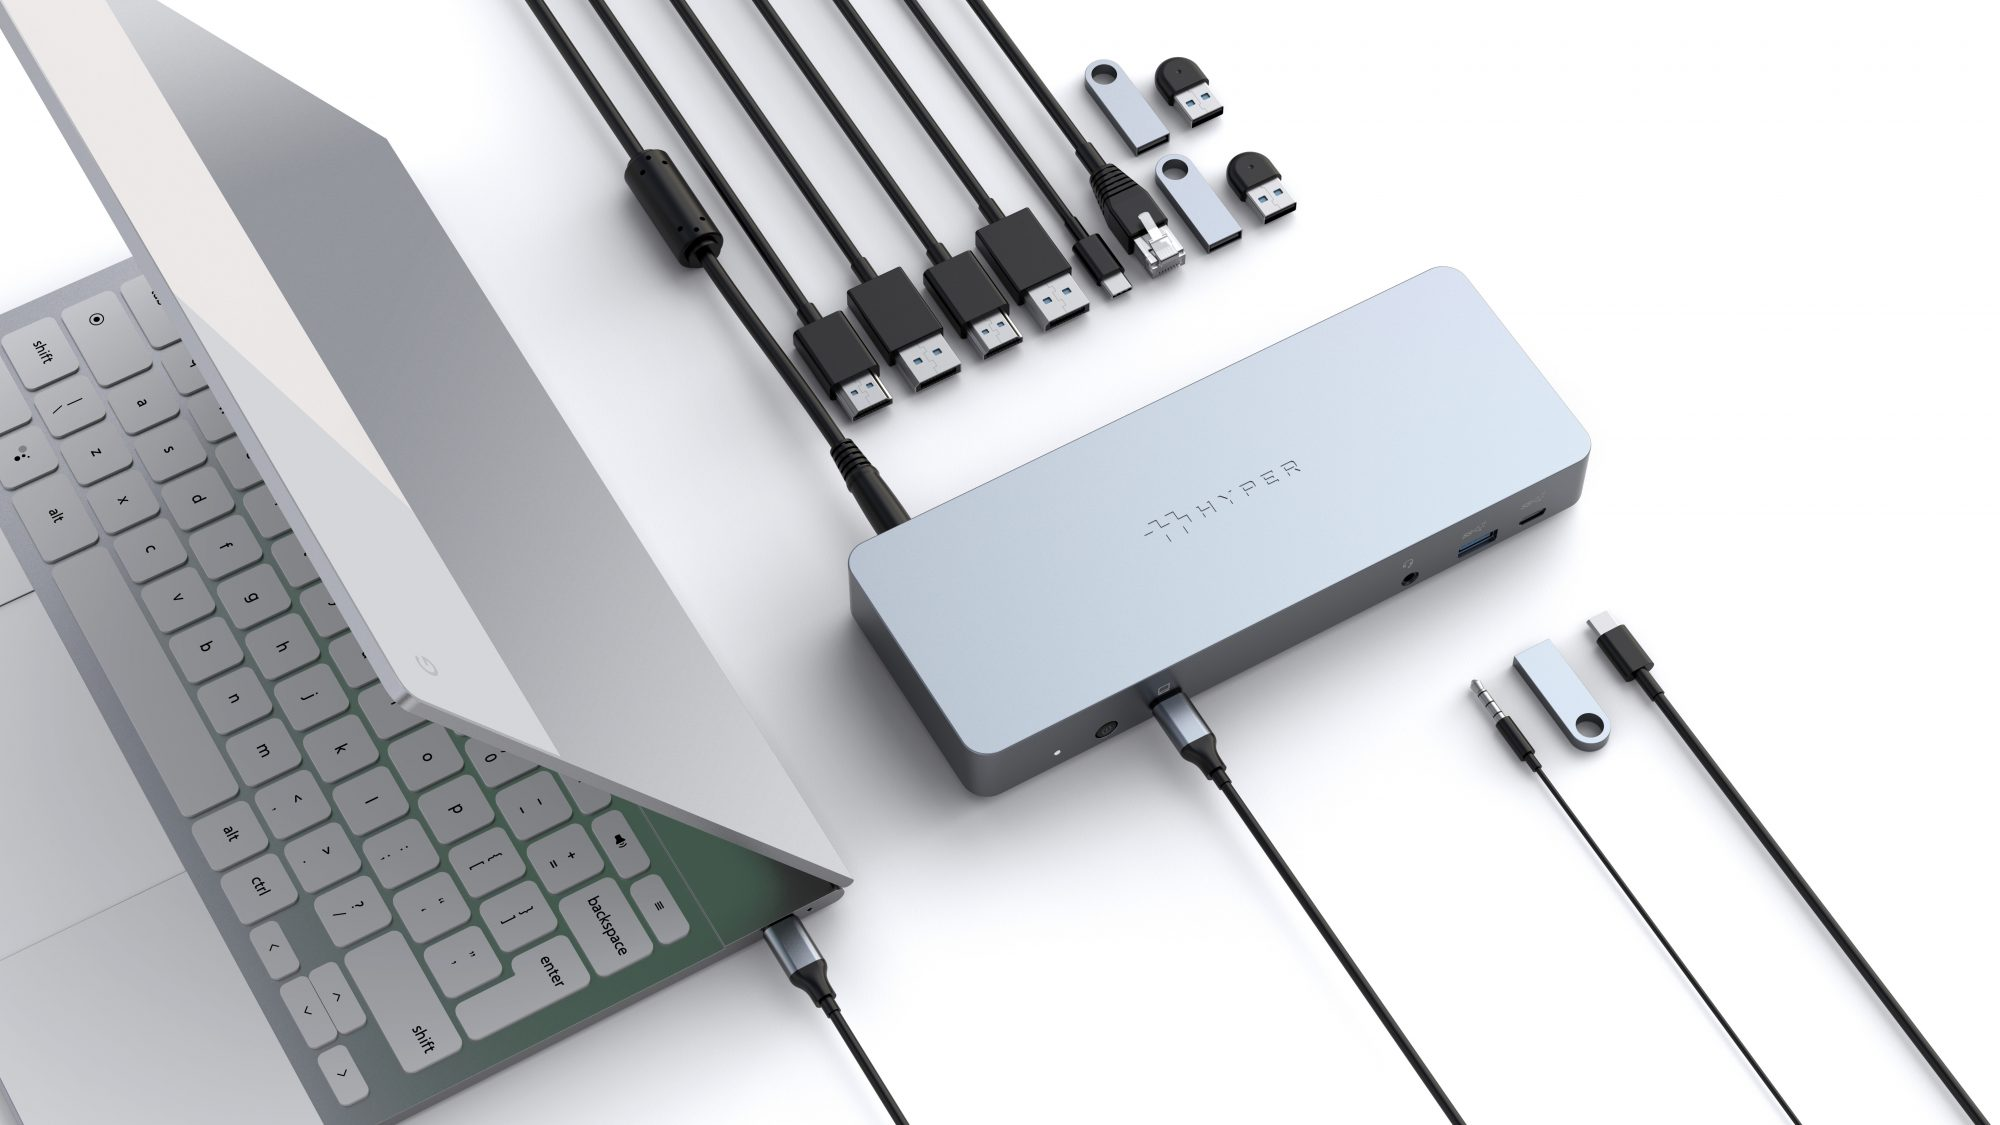 Hyper adds two new USB-C Works with Chromebook accessories to its lineup